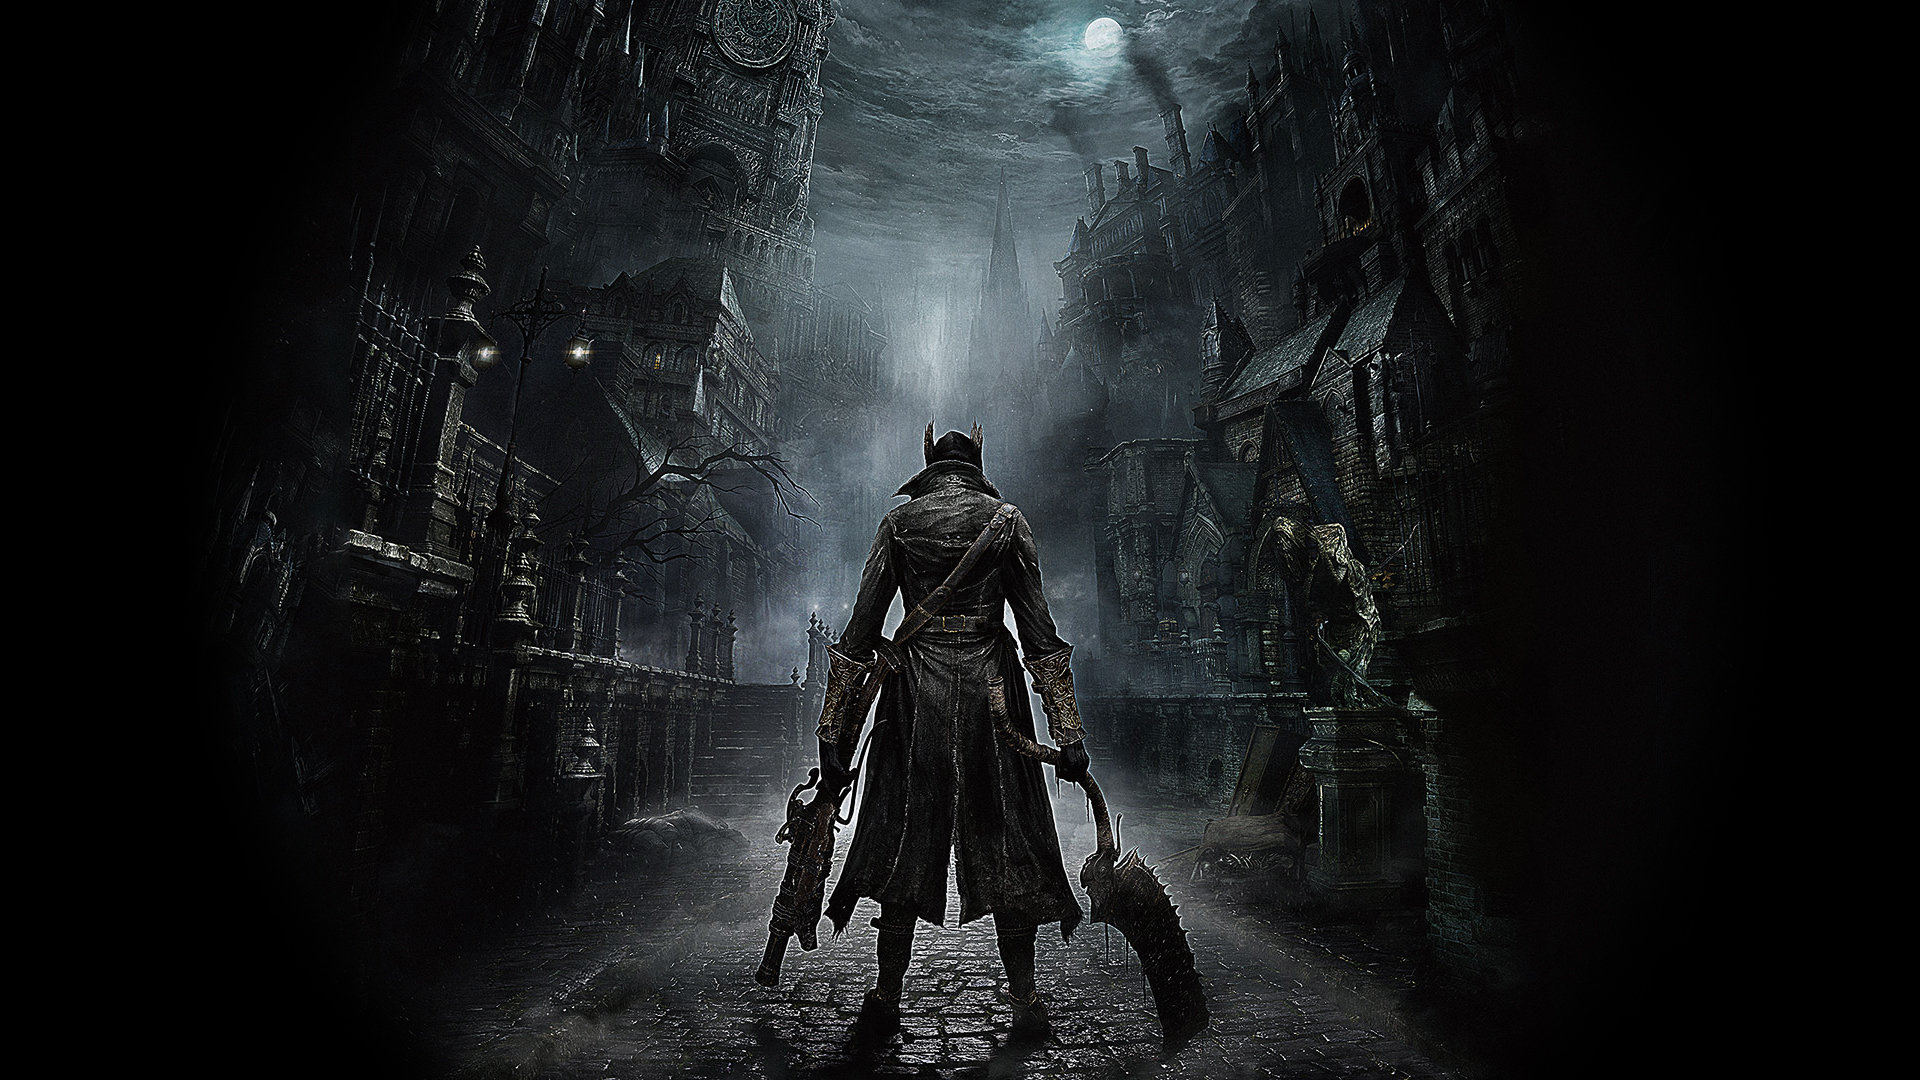 Bloodborne wallpapers 1920x1080 Full HD 1080p desktop backgrounds